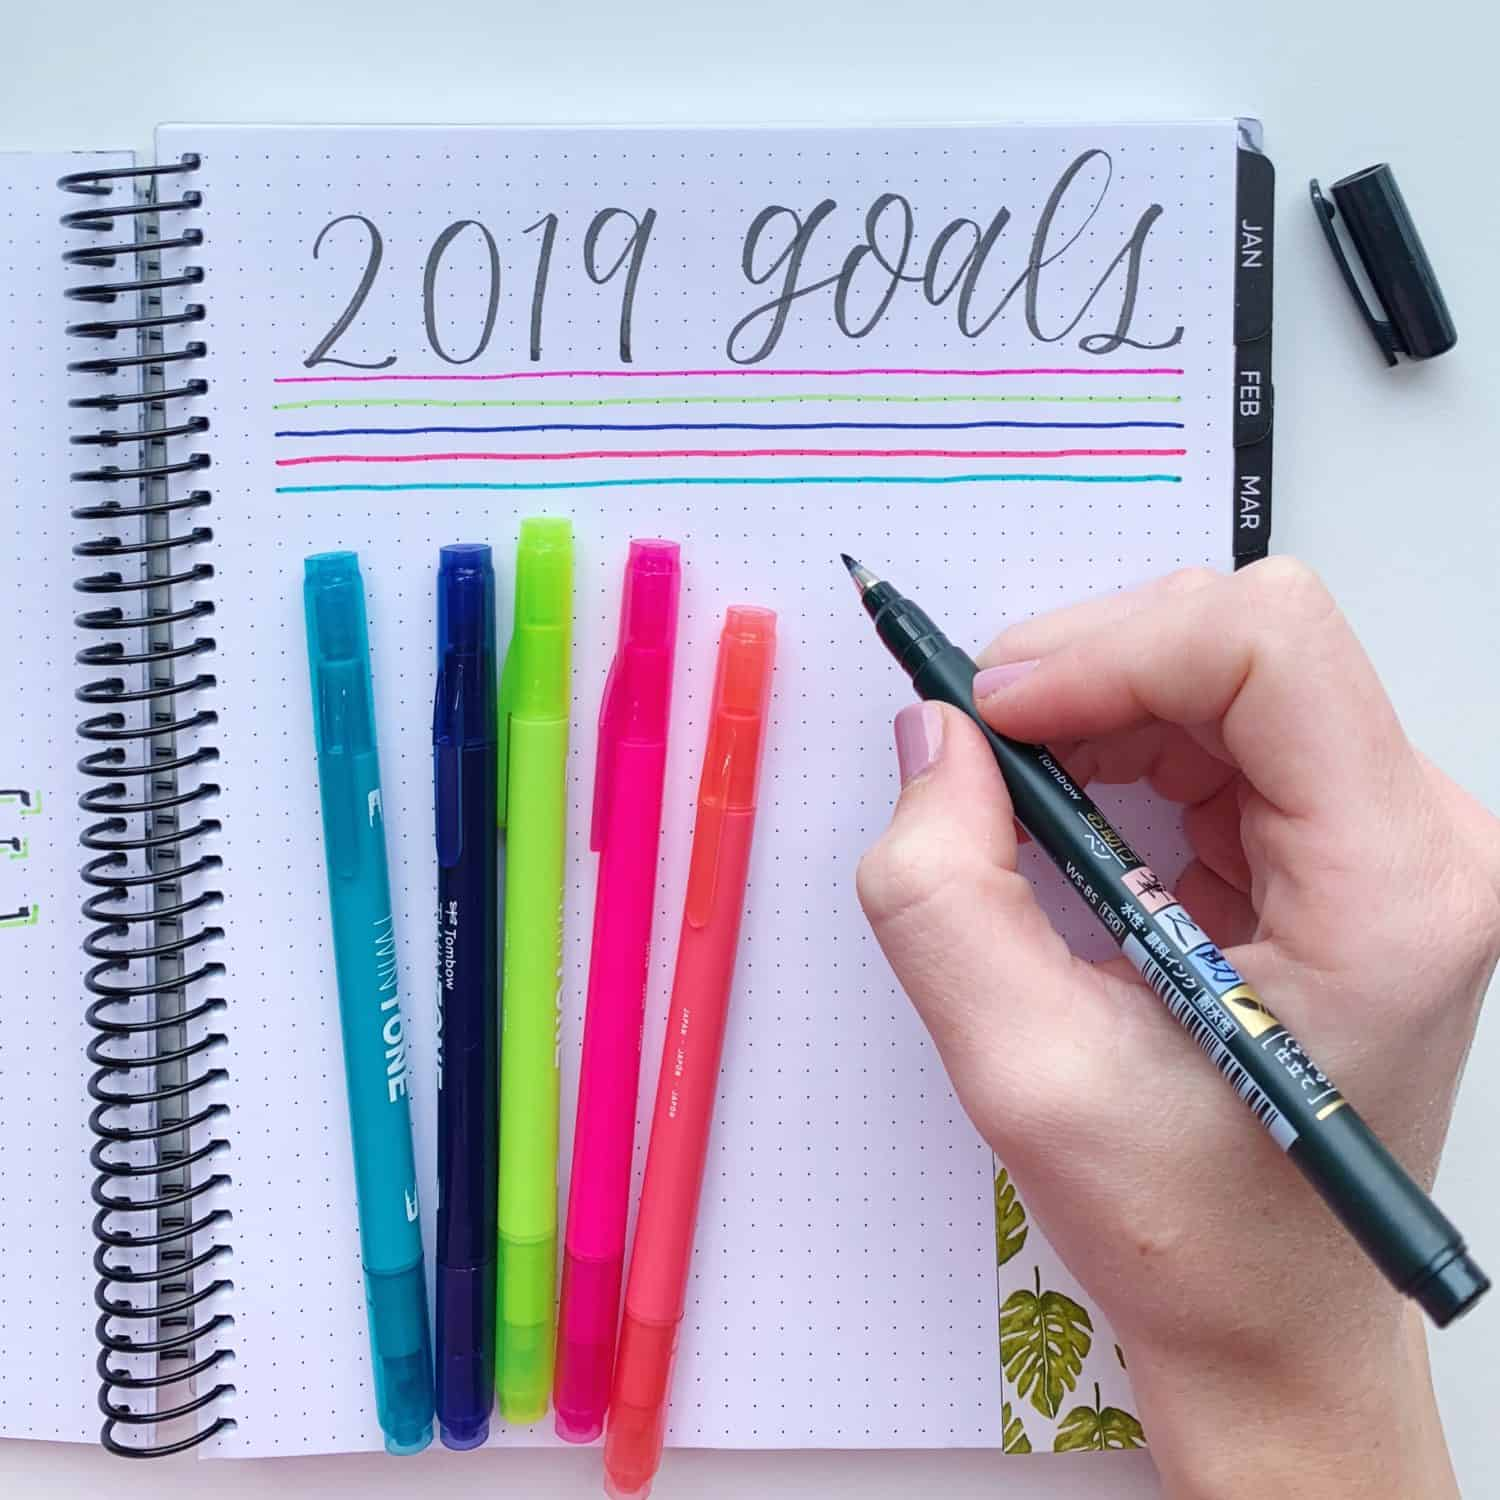 Stick To Your 2019 Goals